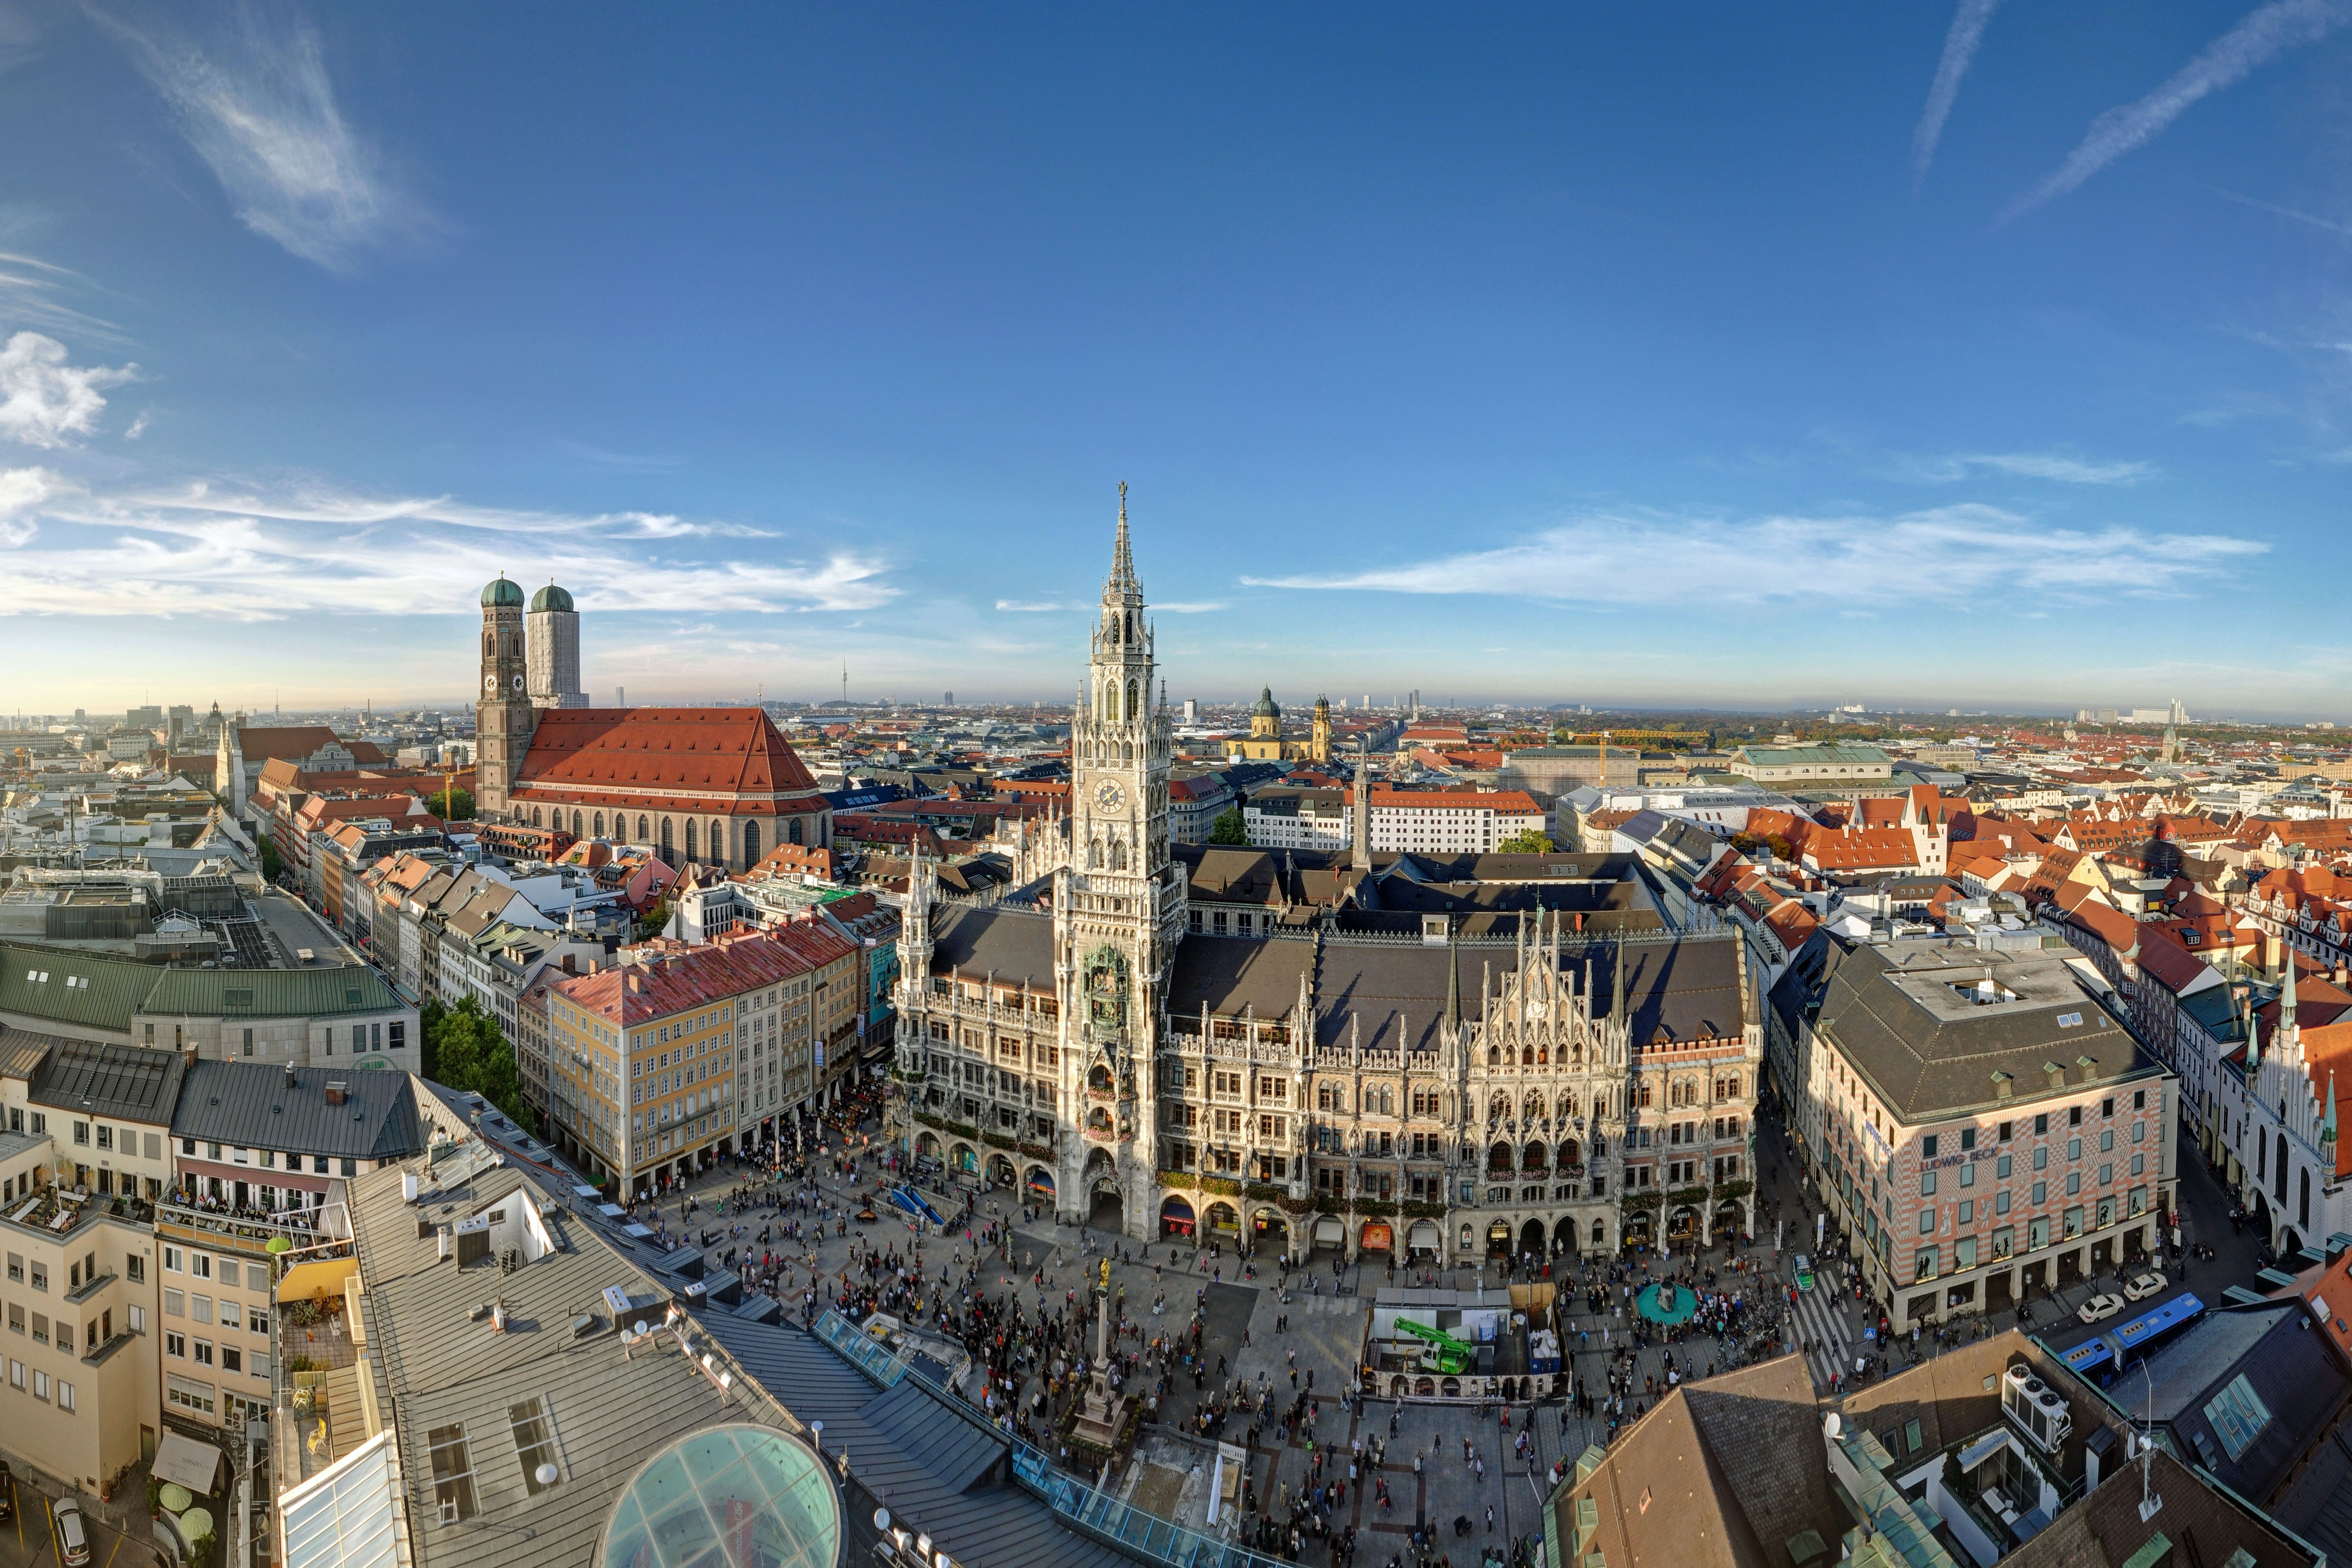 Wide angle view over the rooftops of Munich